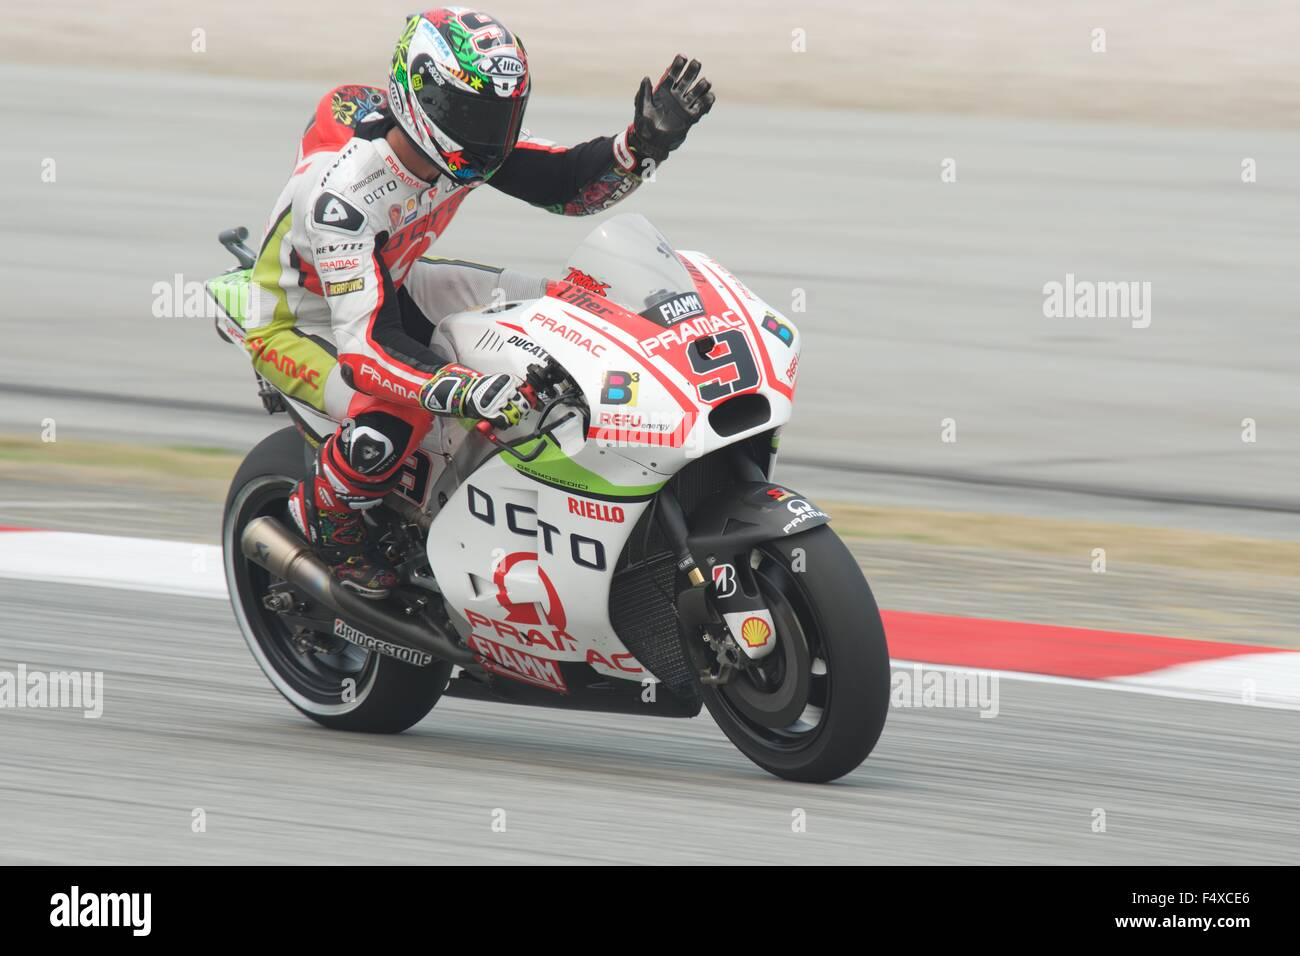 Sepang Circuit, Malaysia. 23rd Oct, 2015. Danilo Petrucci waving during the Free Practice sessions for the Shell - Stock Image